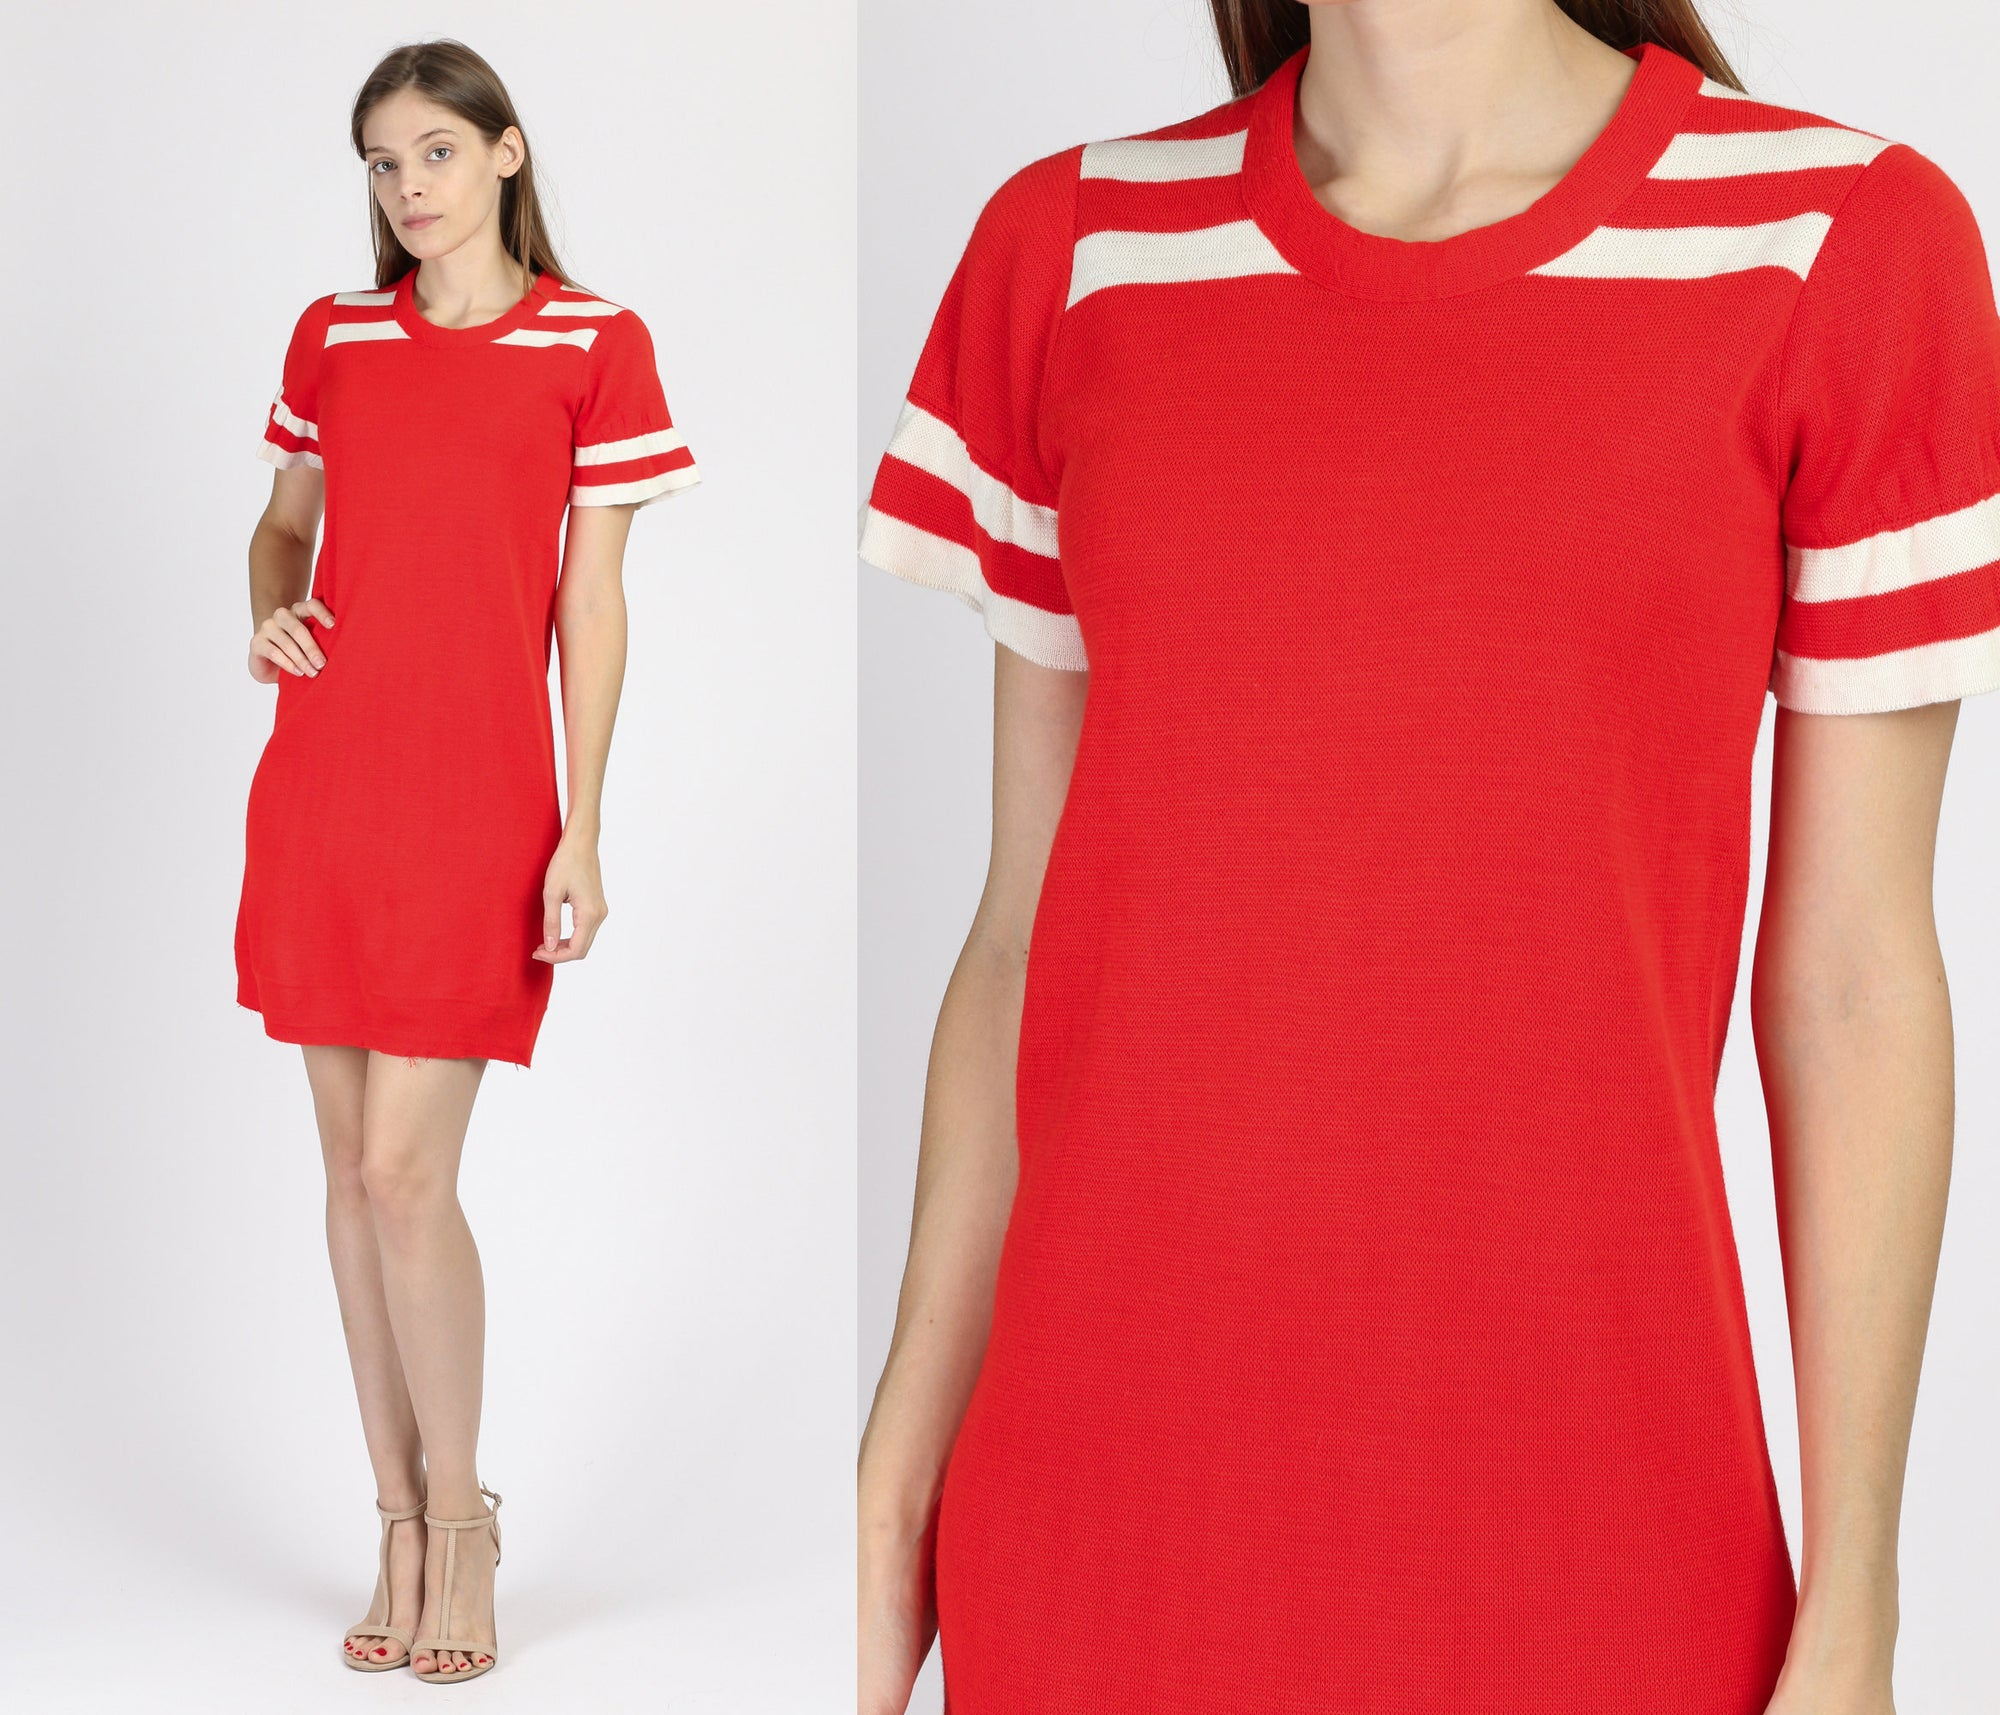 60s Charlie's Girls Red & White Mod Mini Dress - Small